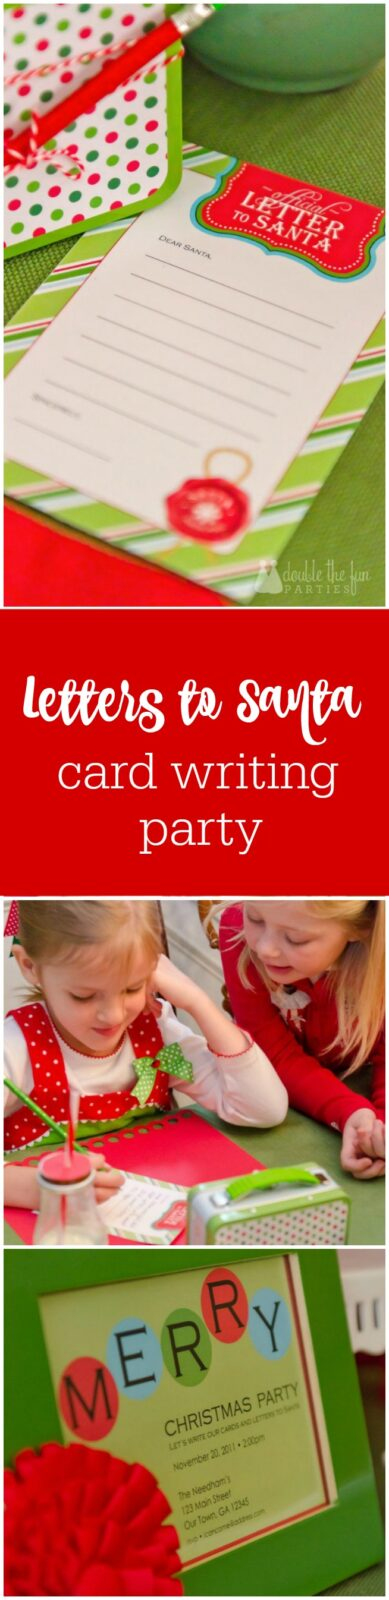 My Parties Letters To Santa Party